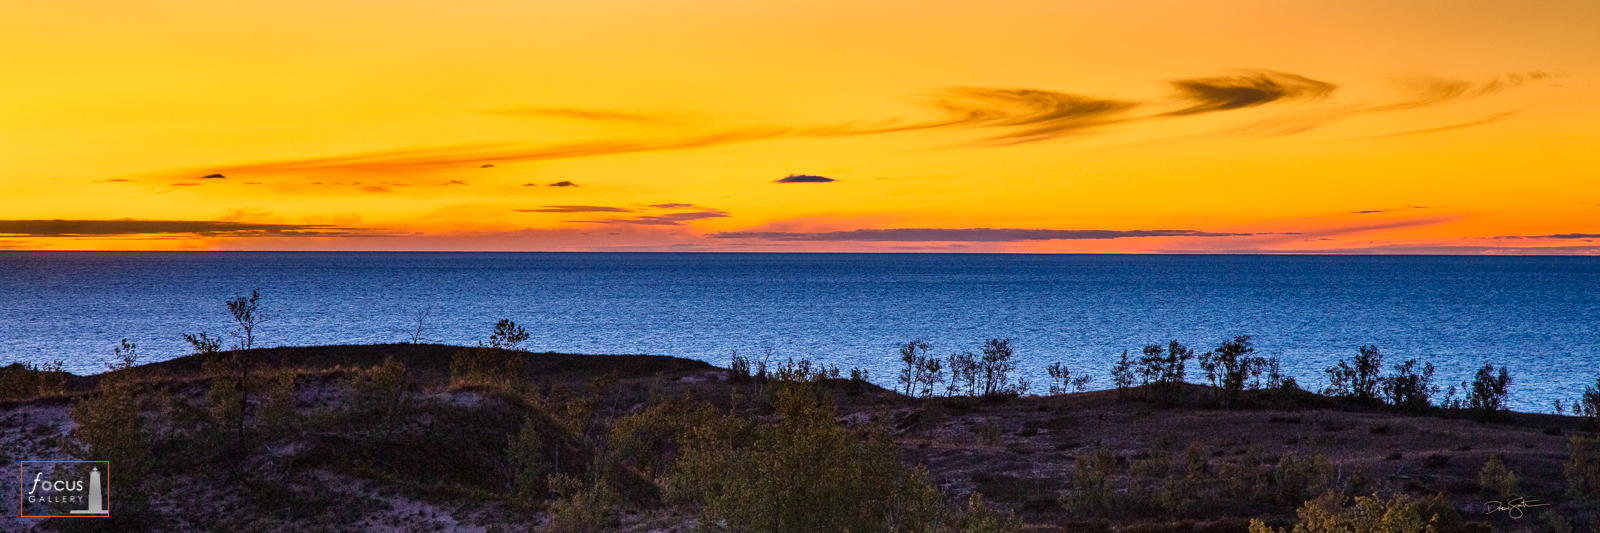 Colorful evening glow over Lake Michigan and bluffs at Sleeping Bear Point.